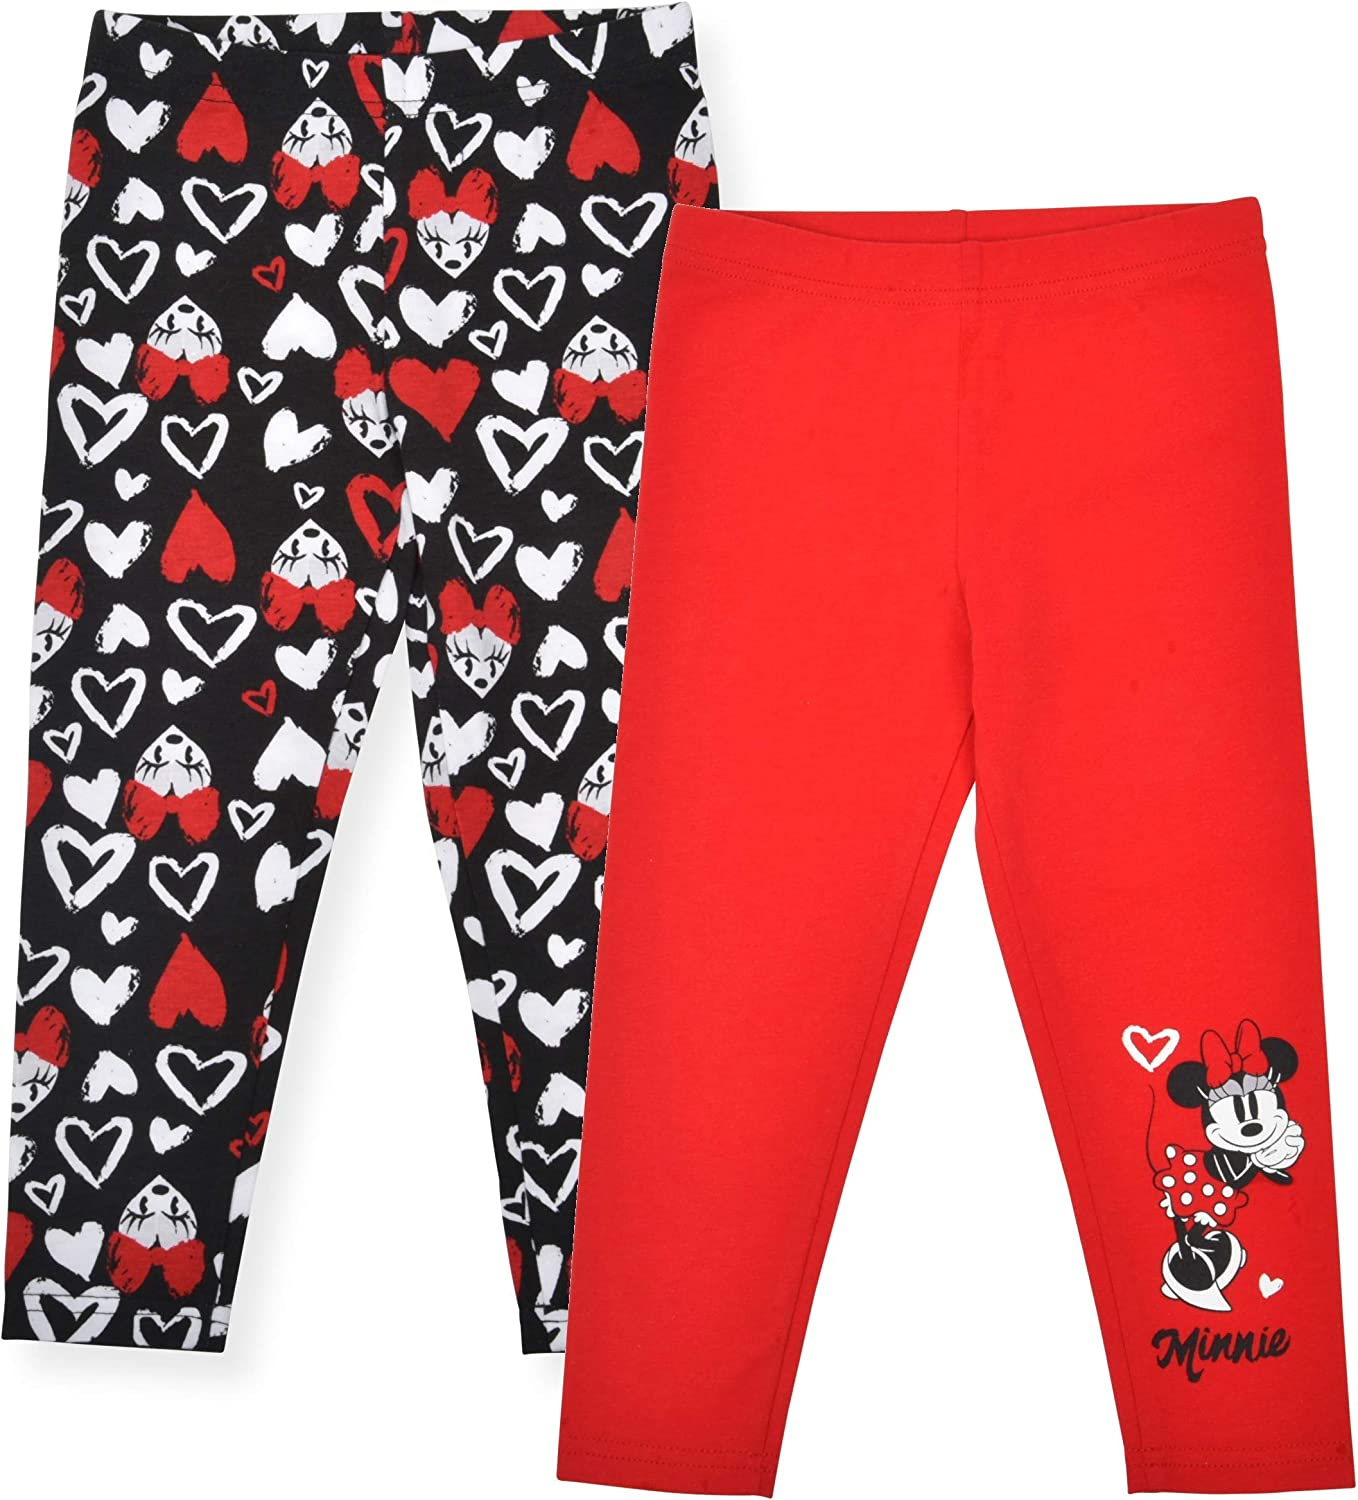 Disney Minnie Mouse Baby Girls Drawstring 2 Pack Pants